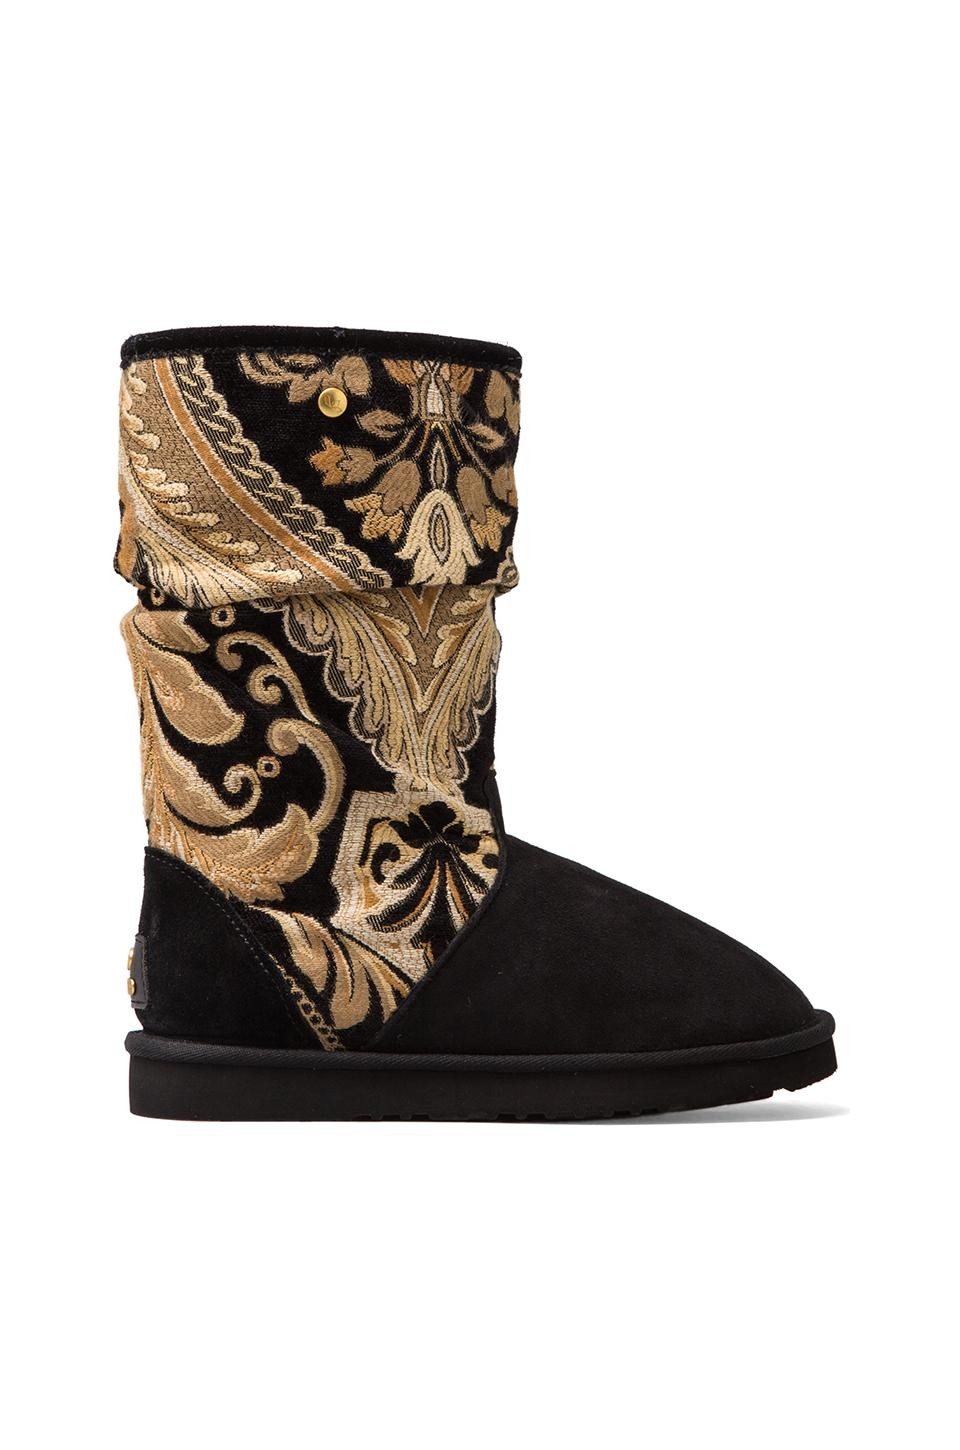 Koolaburra Myka Tapestry Boots with Wool and Twinface Sheepskin in Black Tapestry